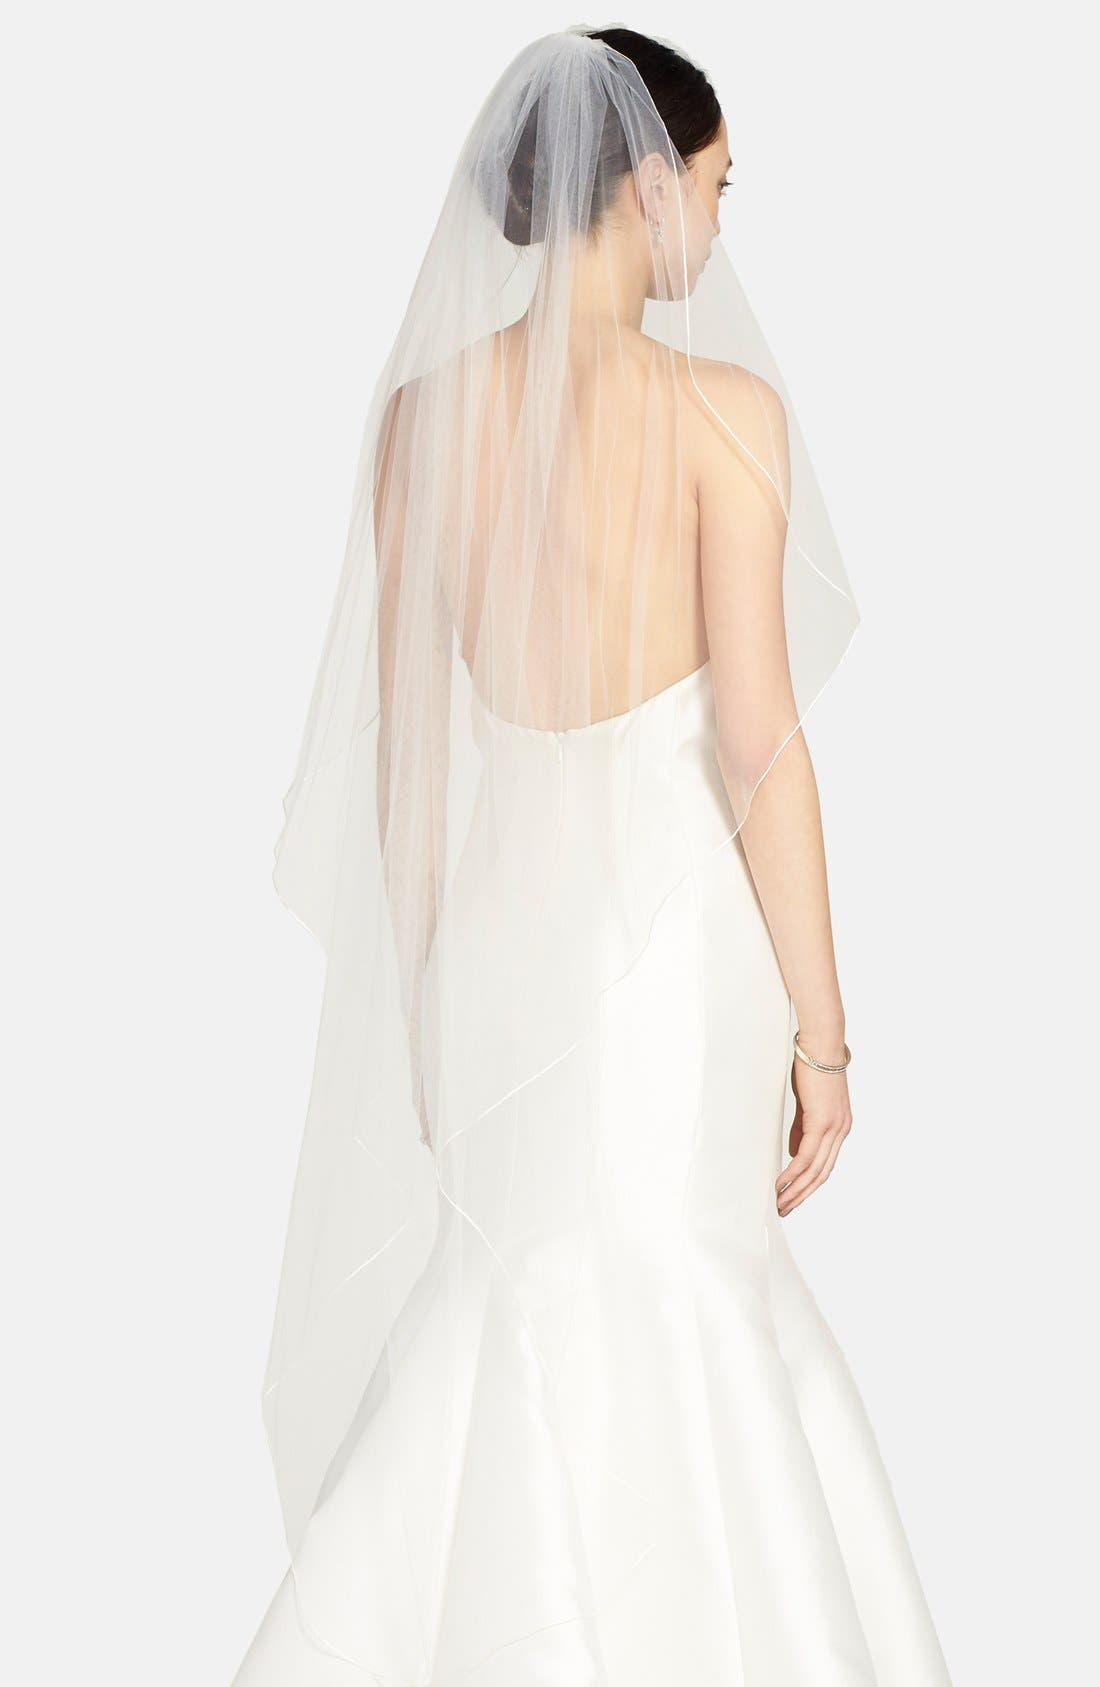 'Avalon' Cascading Waltz Length Veil,                         Main,                         color, Light Ivory